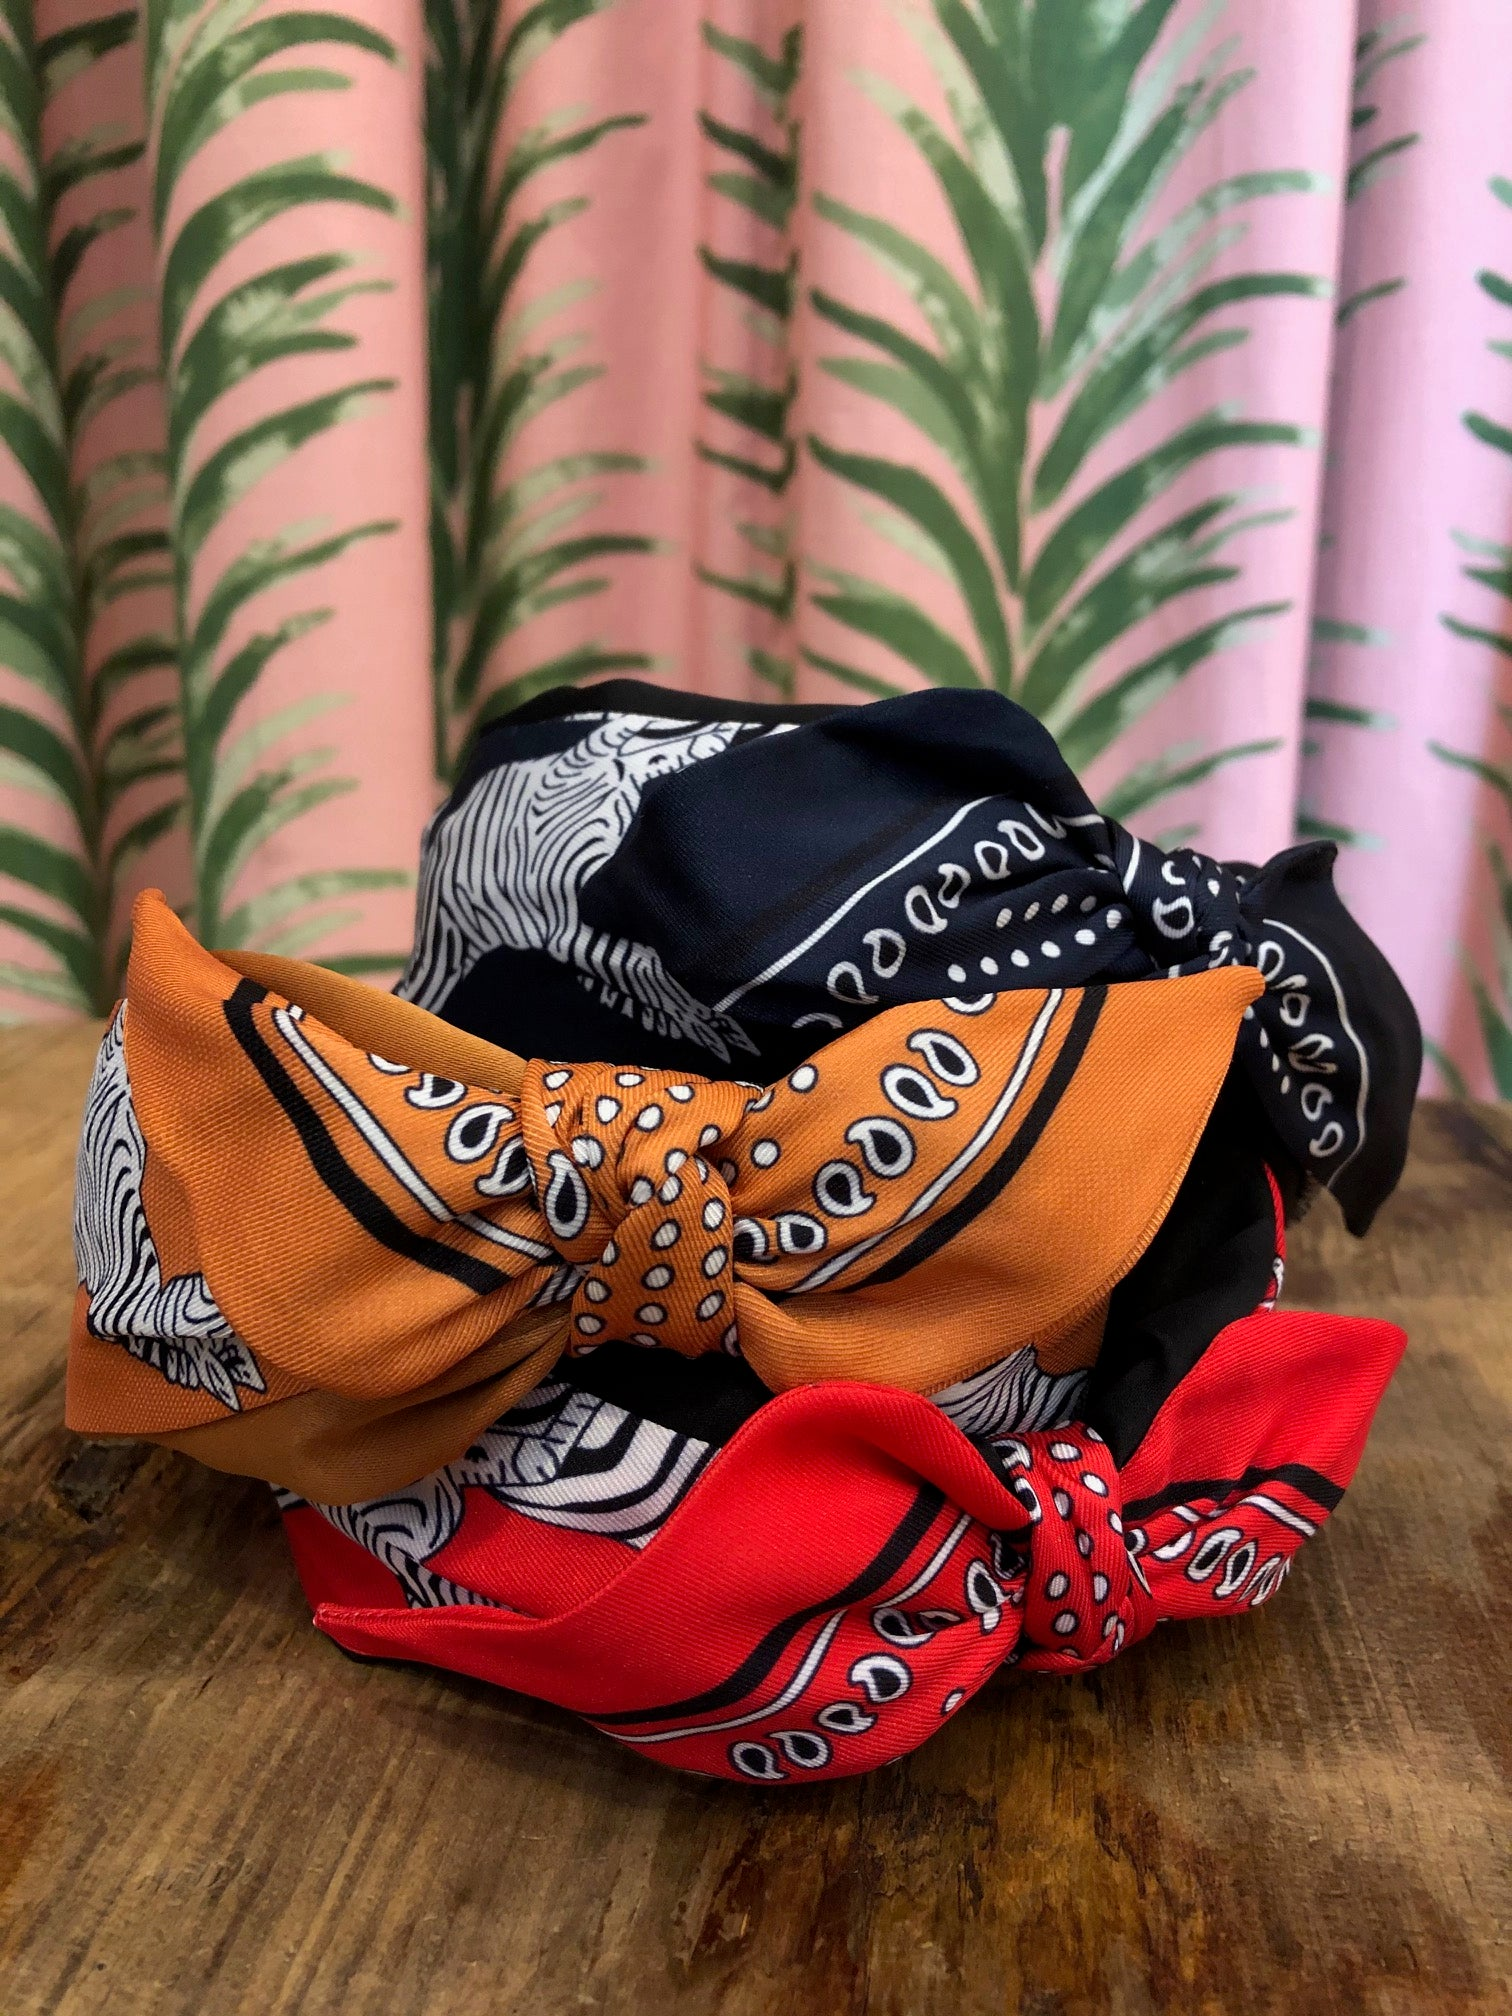 Zebra Bandana Print Headband in Orange